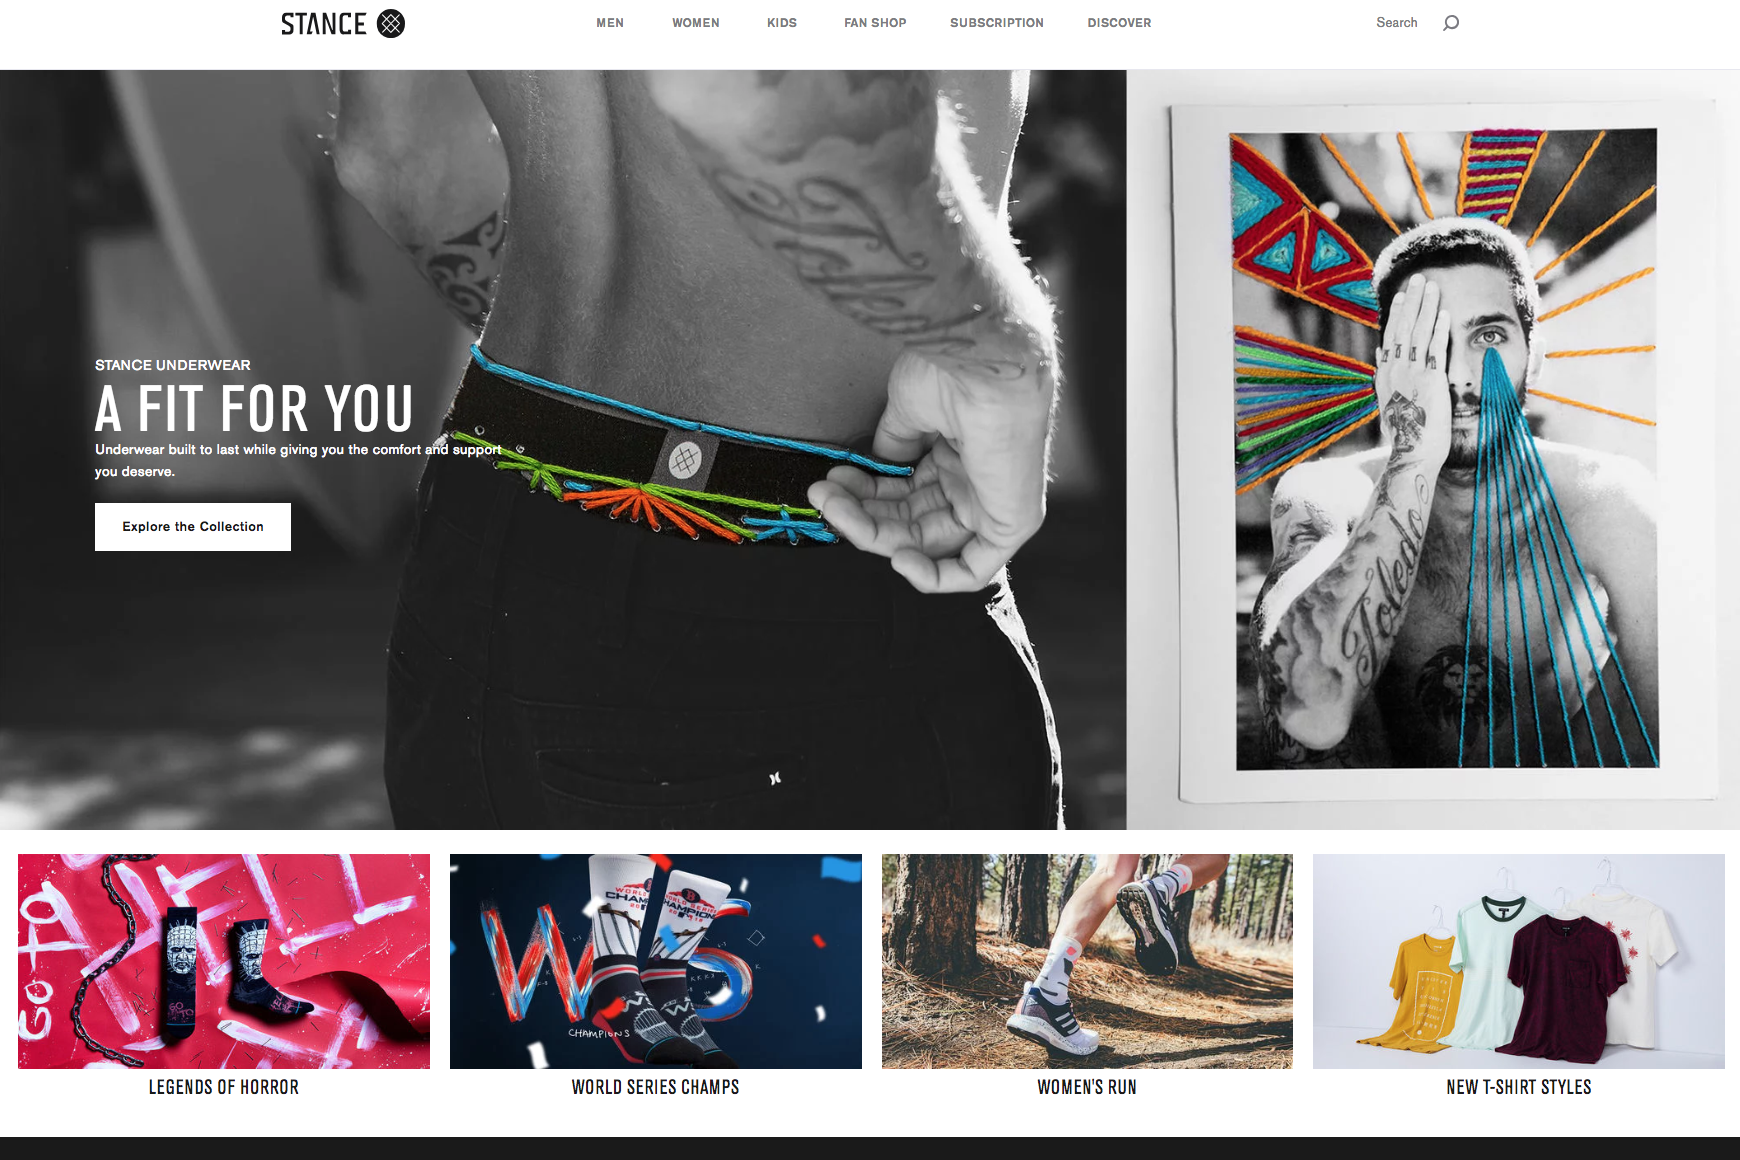 The Stance website.